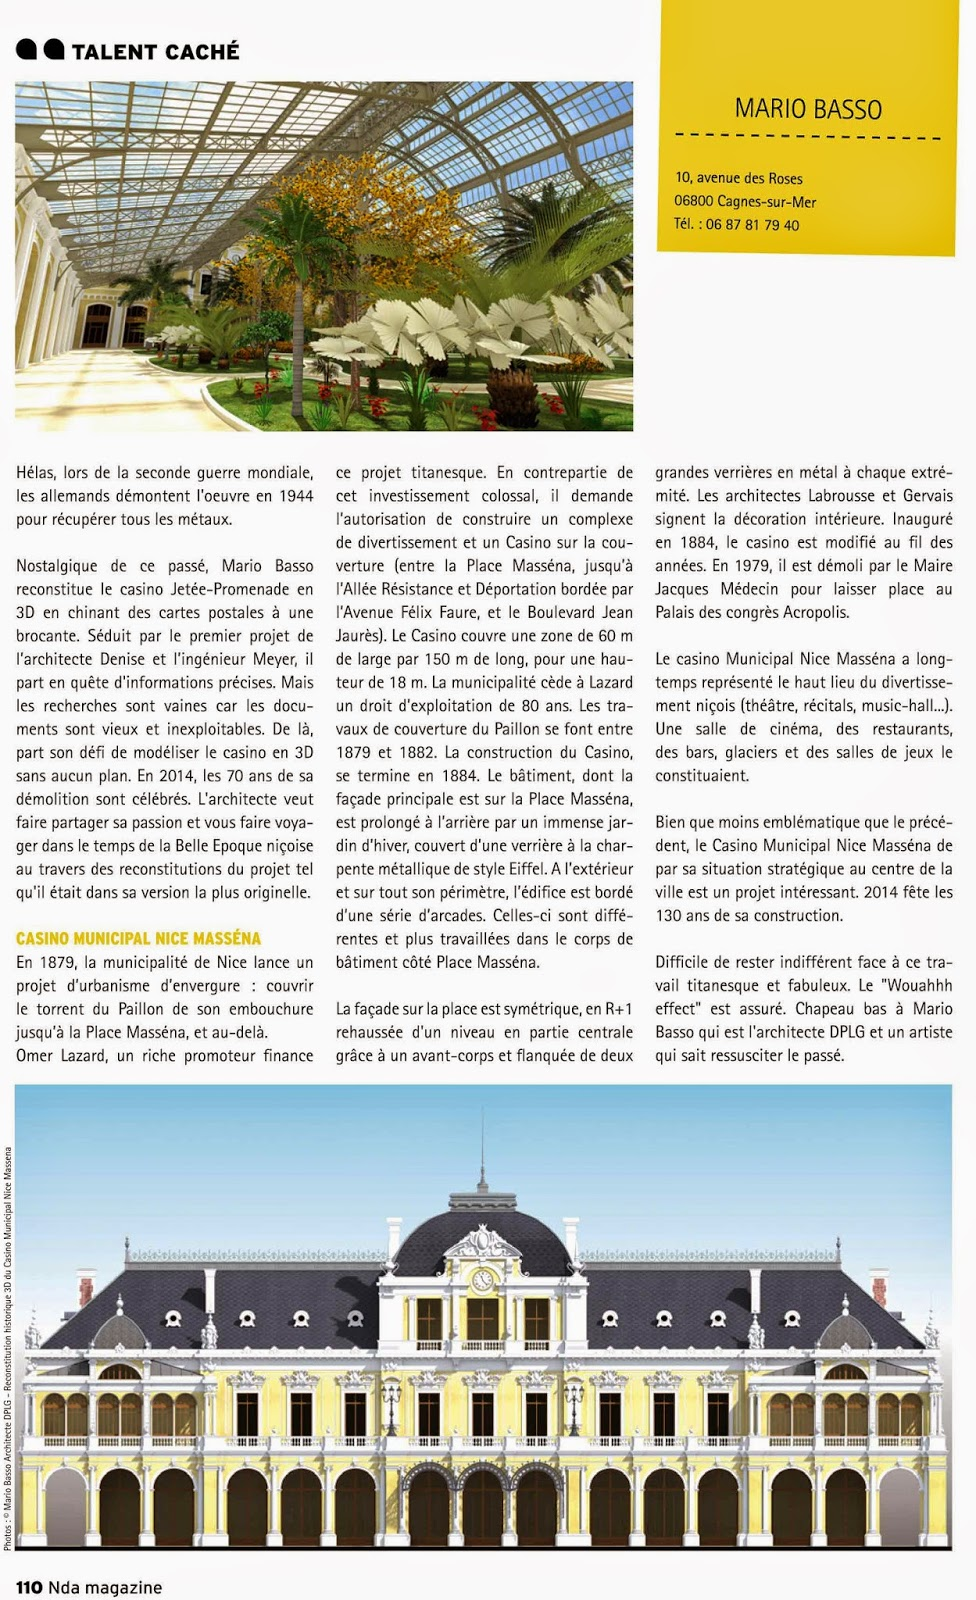 casino jetee promenade de nice en 3d nda magazine n 18 septembre 2014. Black Bedroom Furniture Sets. Home Design Ideas